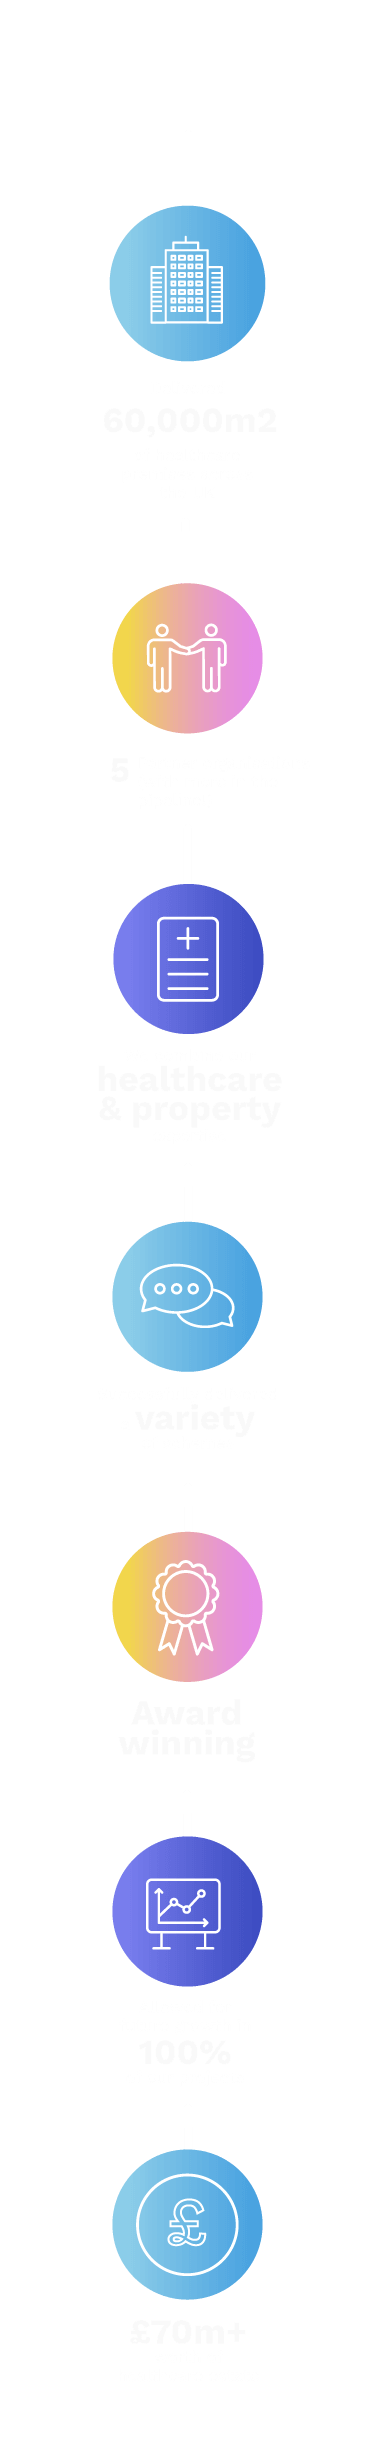 Delivered 60,000m2 of healthcare premises across the UK; 5 Partner organisations (with more in the pipeline!); We combine our healthcare & property expertise; Successfully delivered a variety of schemes; Award winning; Allowed for future growth in 100% of our projects; Delivered £70m+ worth of healthcare estate